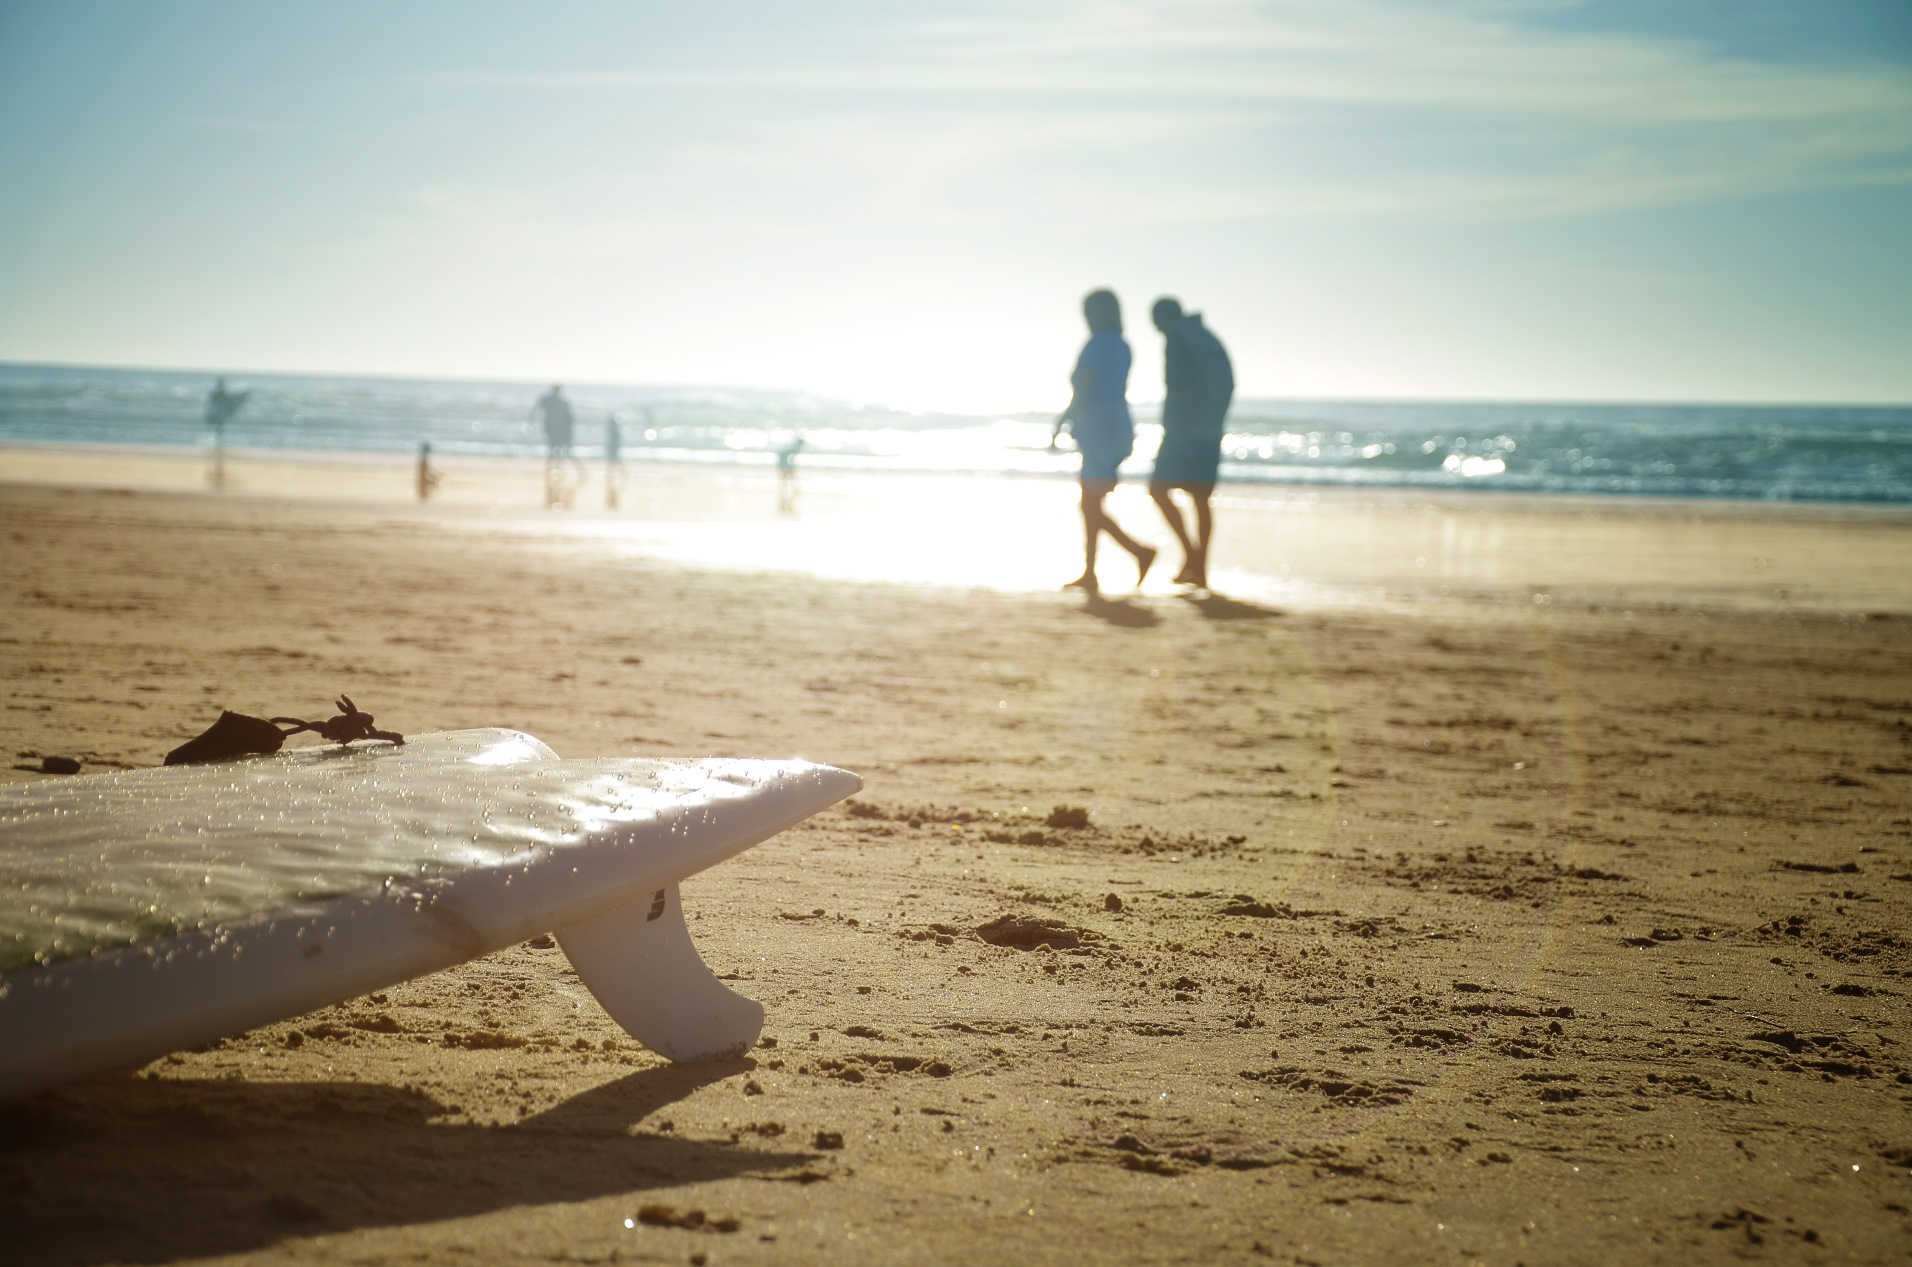 Surf Board, Couple Walking on Beach, Encinitas Walking Tour